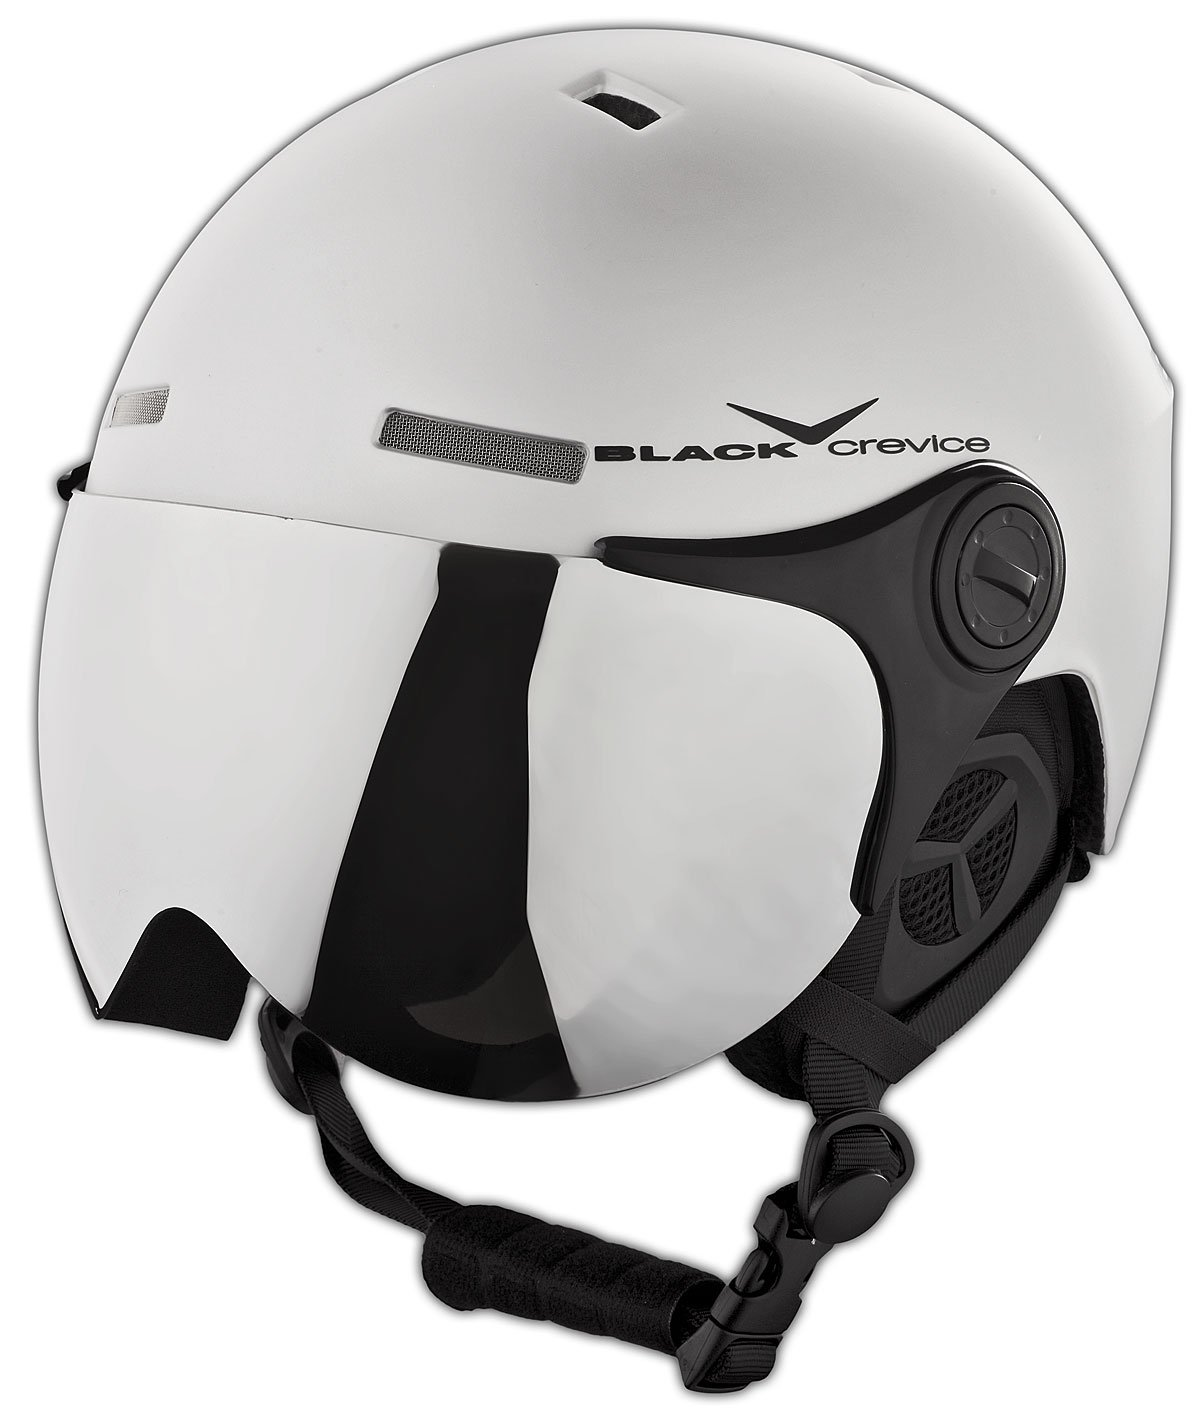 Black Crevice Skihelm - Casco de esquí, color Plata Mate/Negro (Matt Silver/Black), talla S/M (54-57 cm)